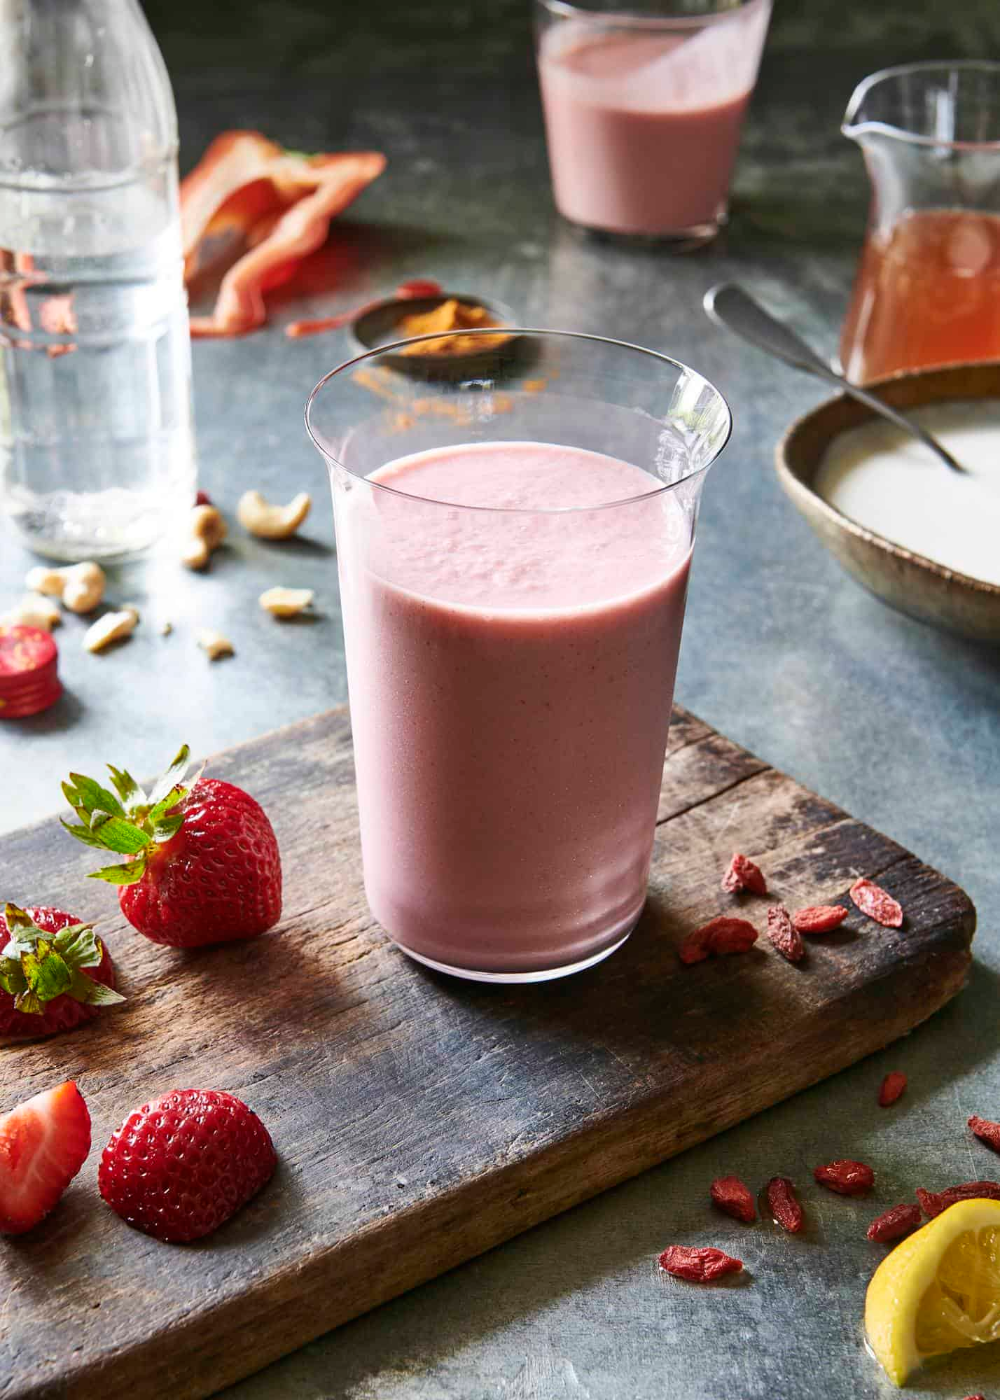 This amazing strawberry banana smoothie is simple and delicious, and you can take it to the next level with these flavor variations. Try them all! #strawberrybananasmoothie This amazing strawberry banana smoothie is simple and delicious, and you can take it to the next level with these flavor variations. Try them all! #strawberrybananasmoothie